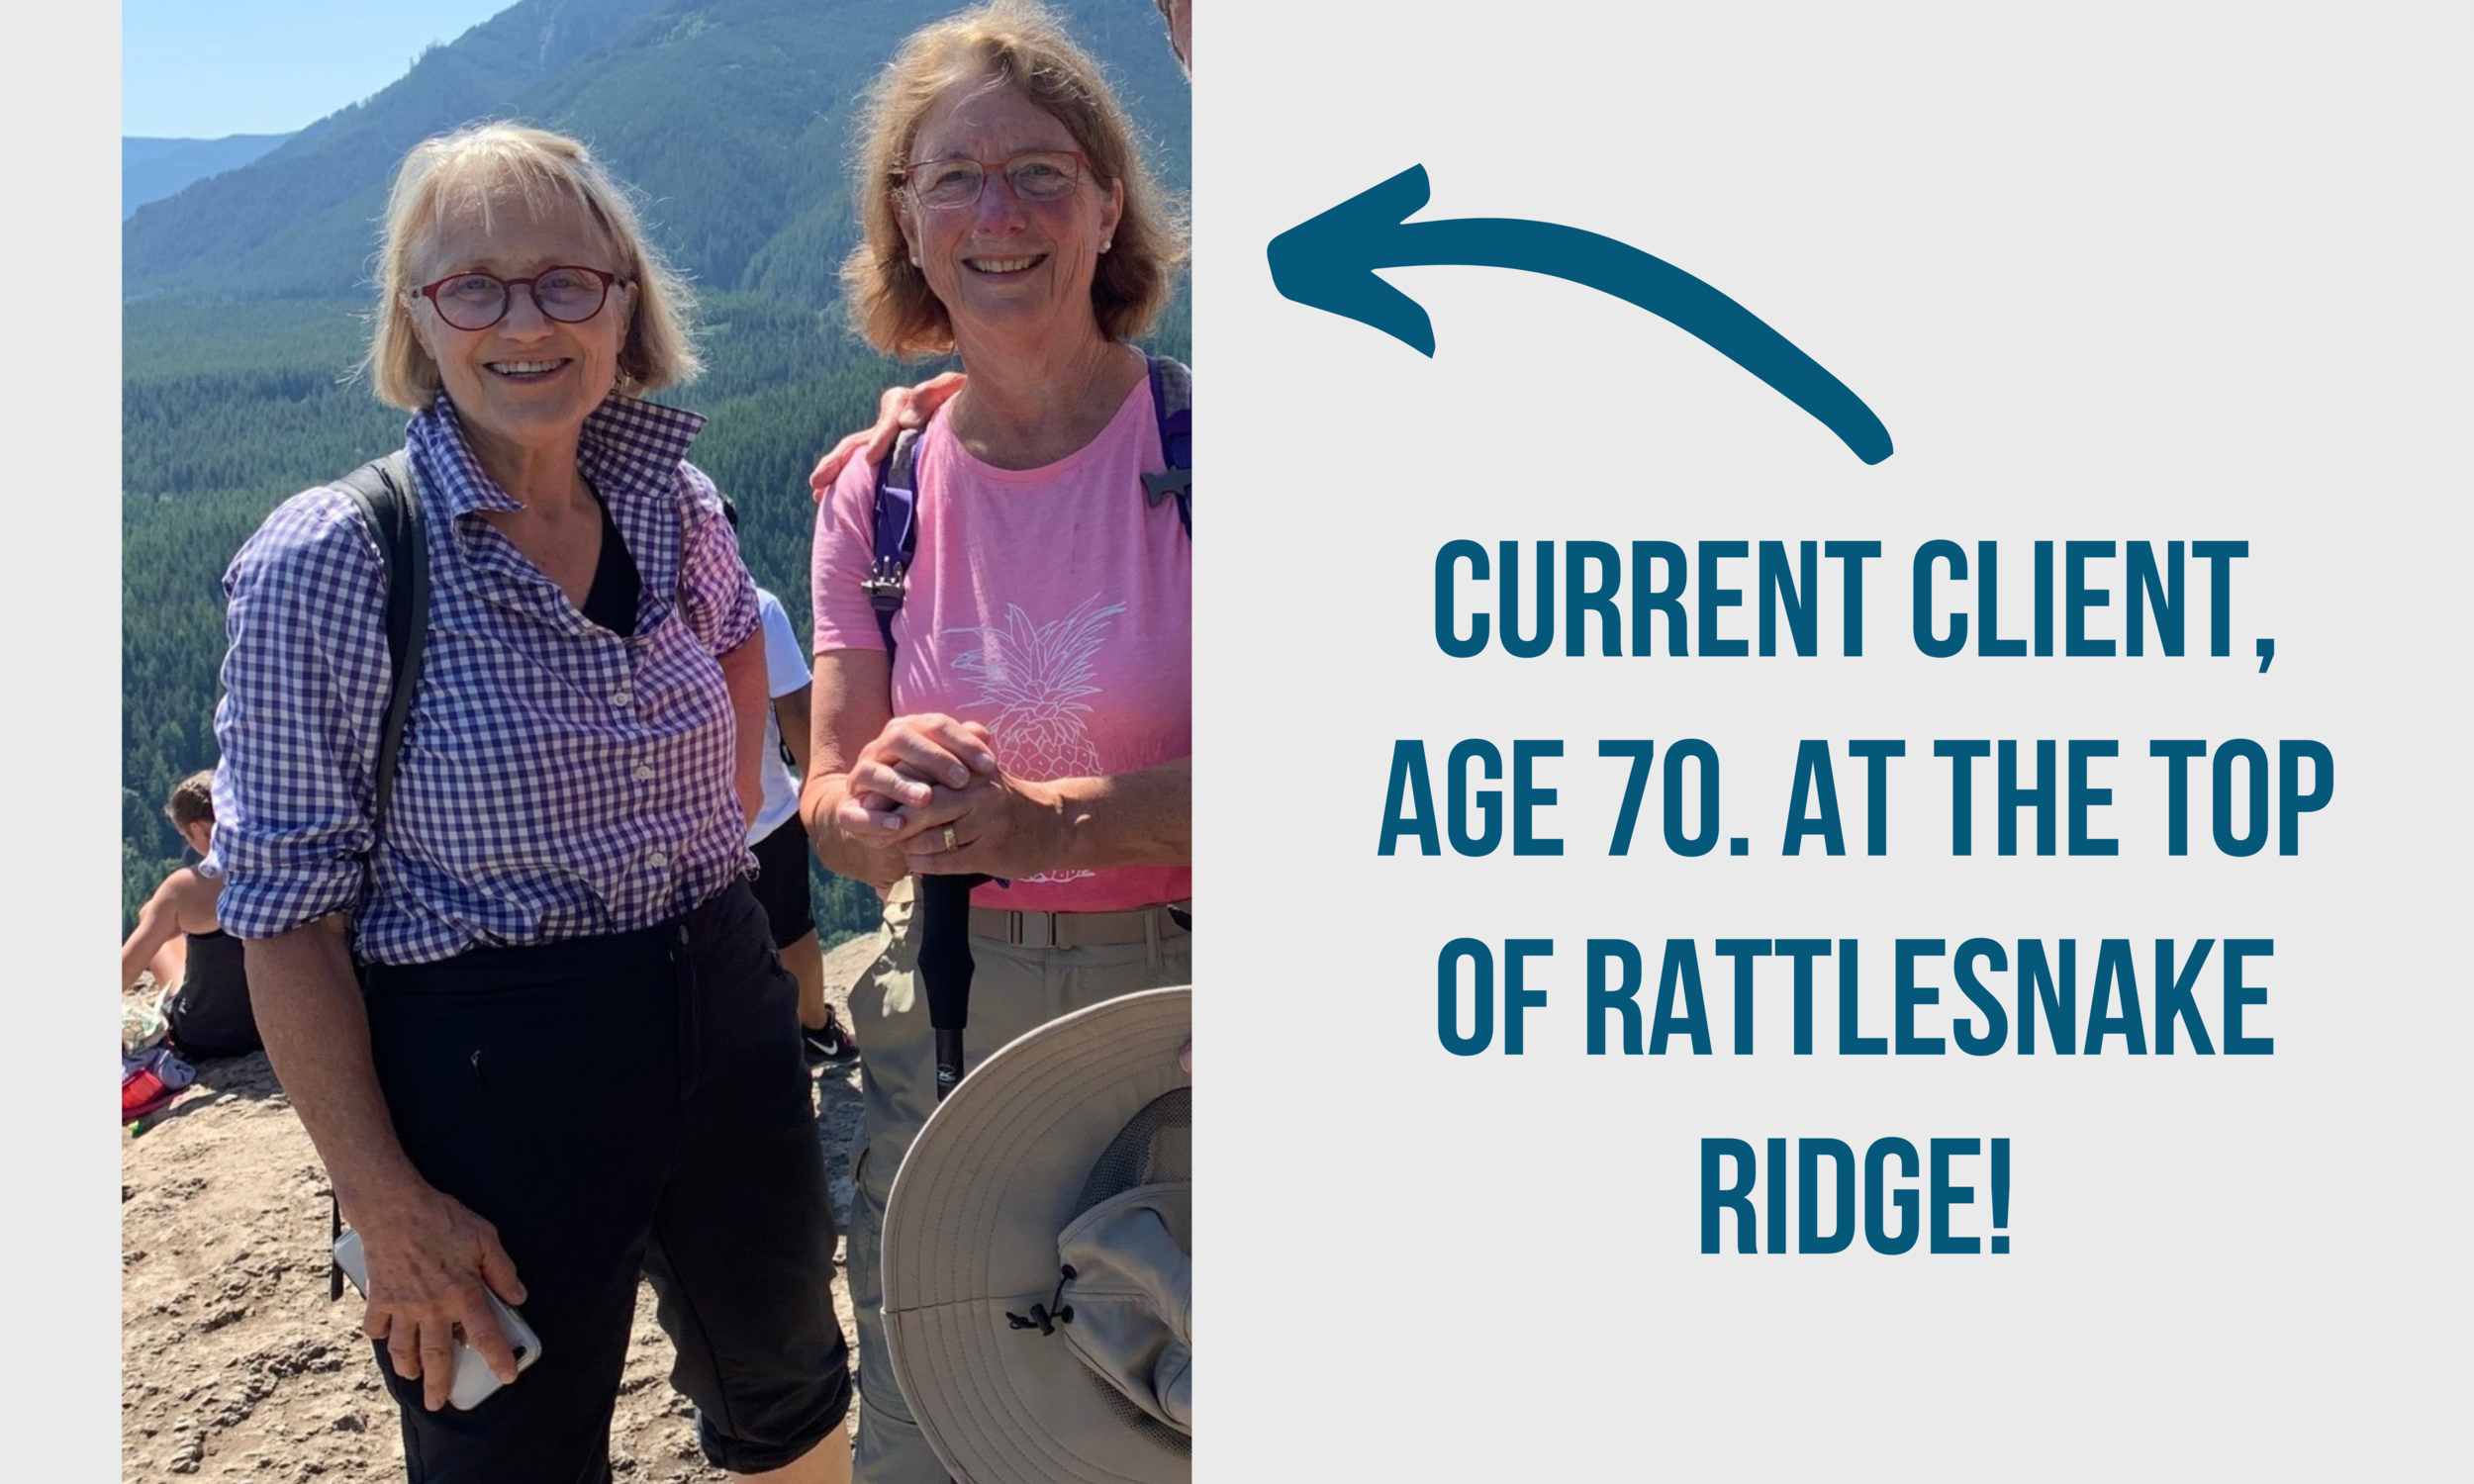 Copy of Current client, age 70. At the top of Rattlesnake Ridge! (1).png